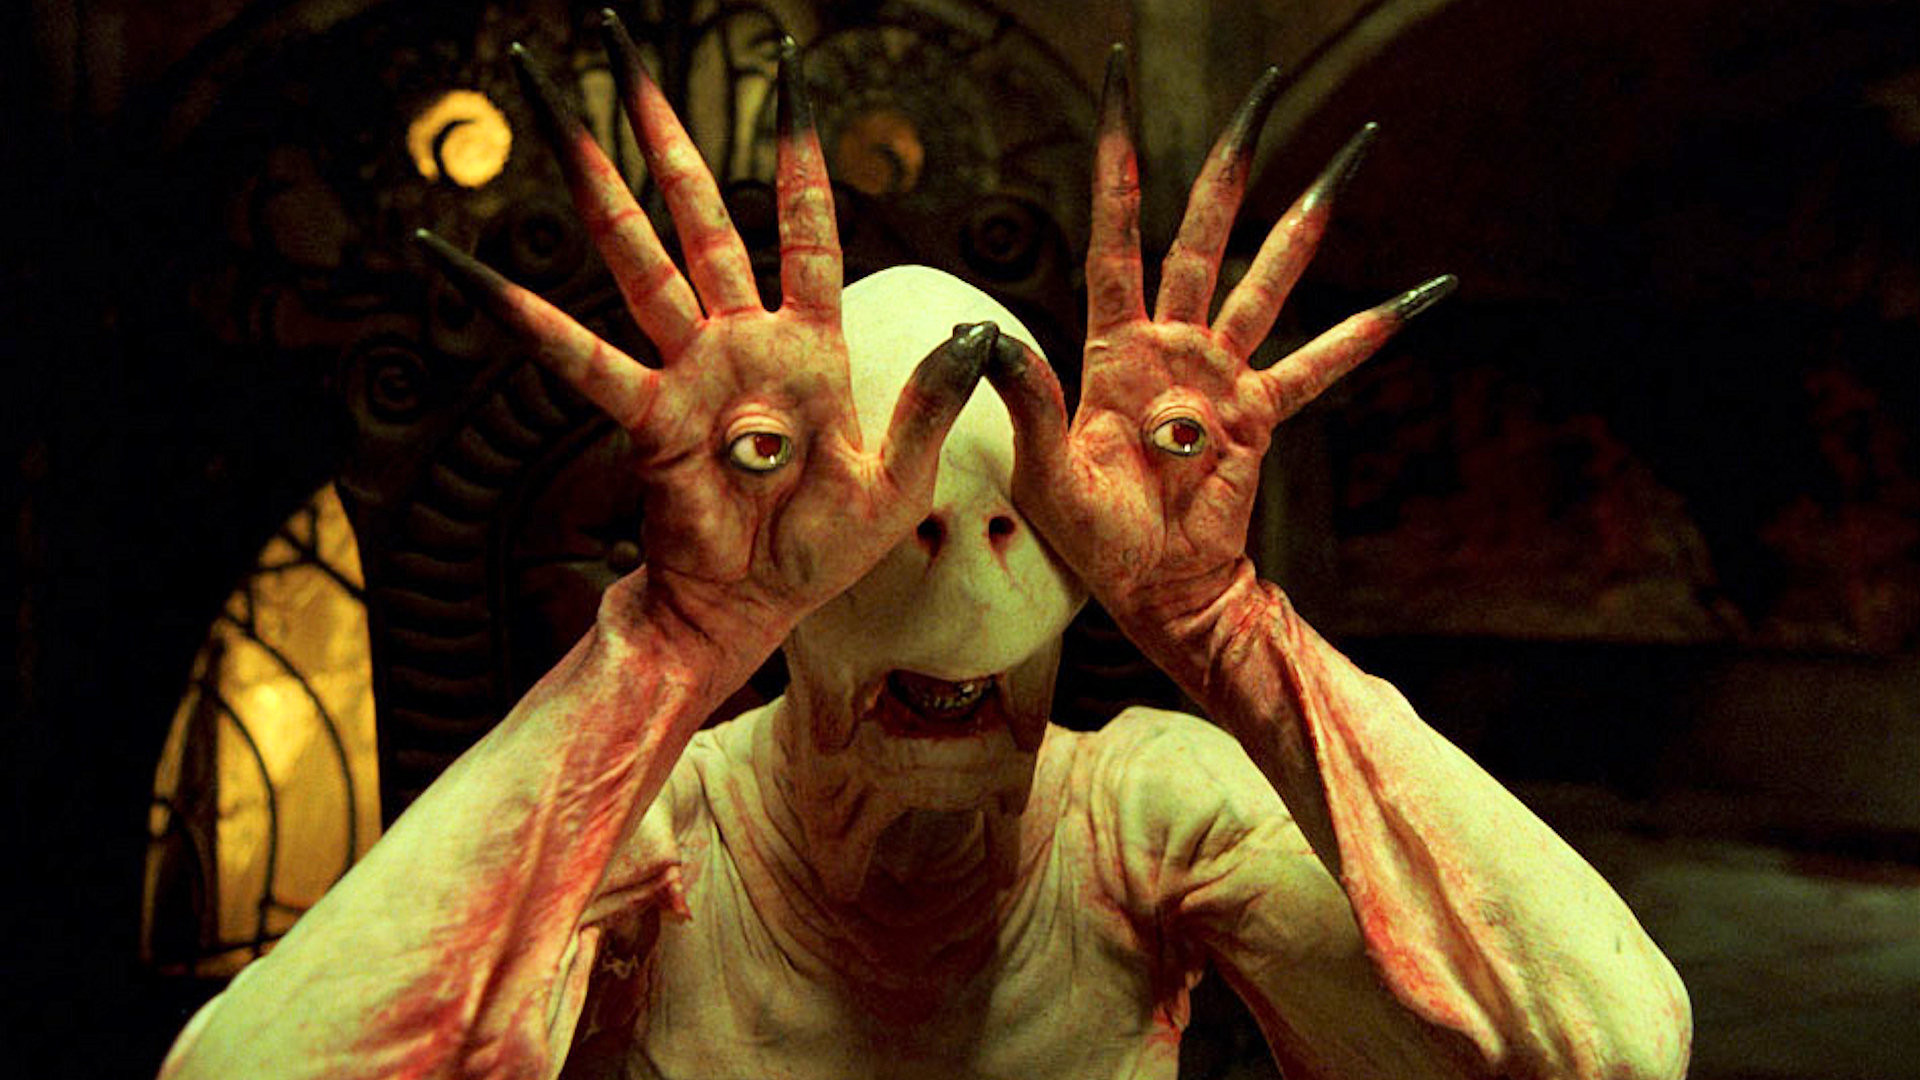 The Pale Man (Doug Jones) in Pan's Labyrinth (2006)